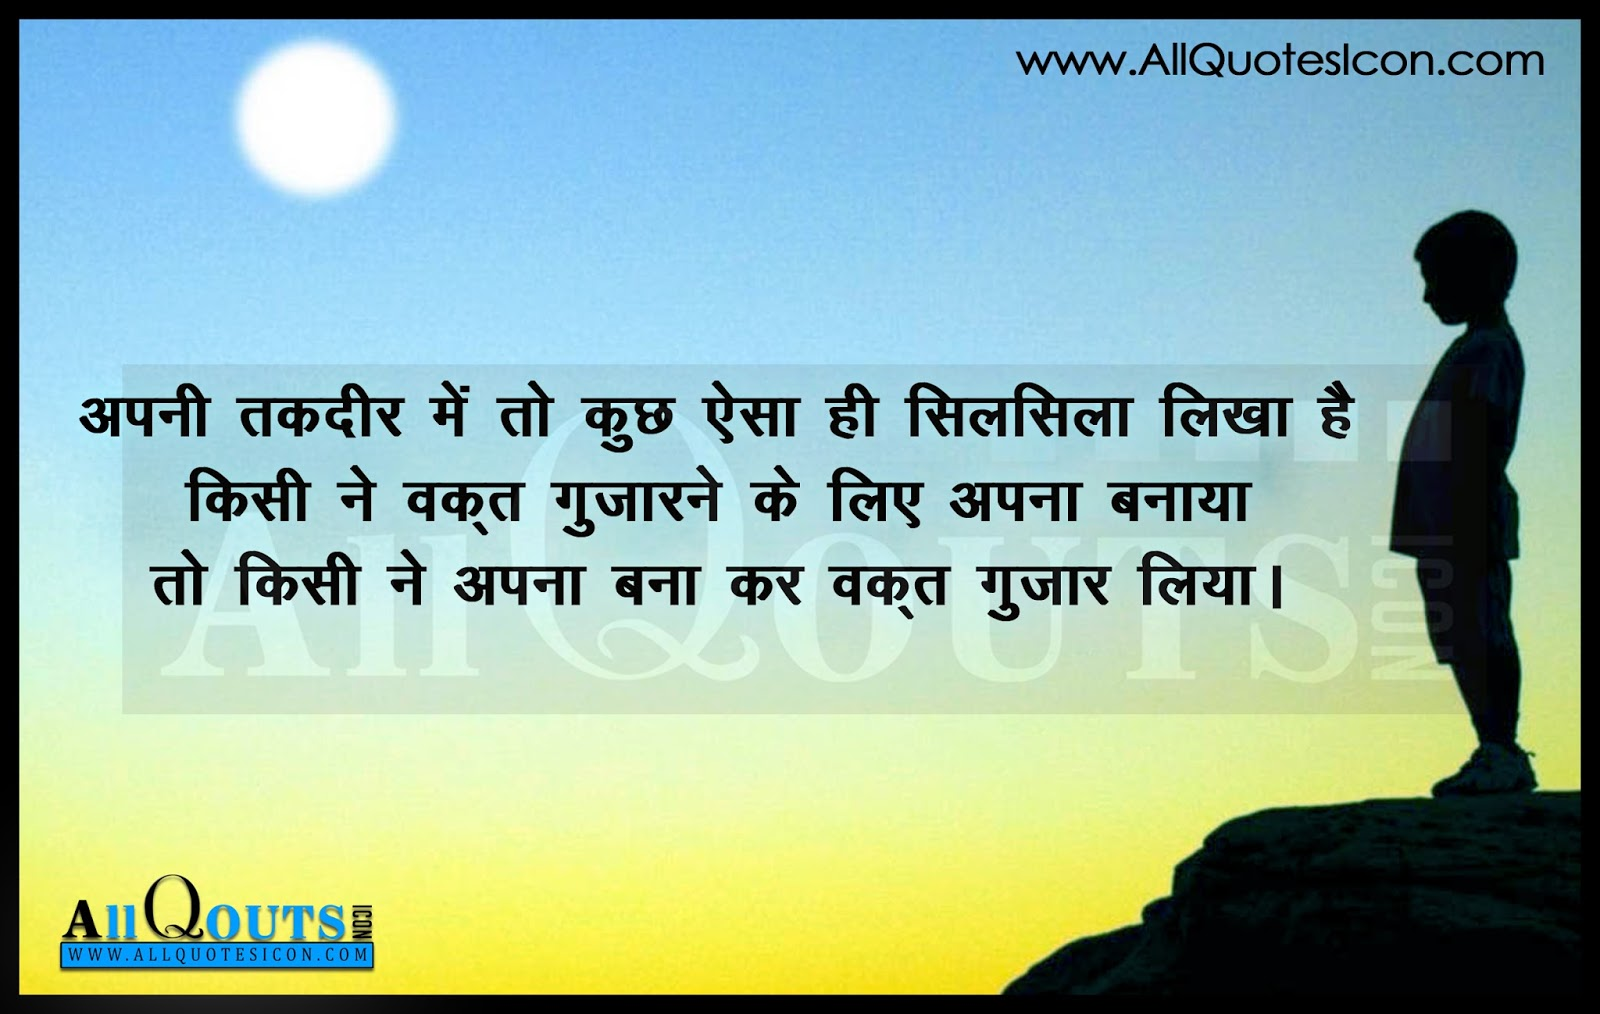 Today Life Quotes In Hindi